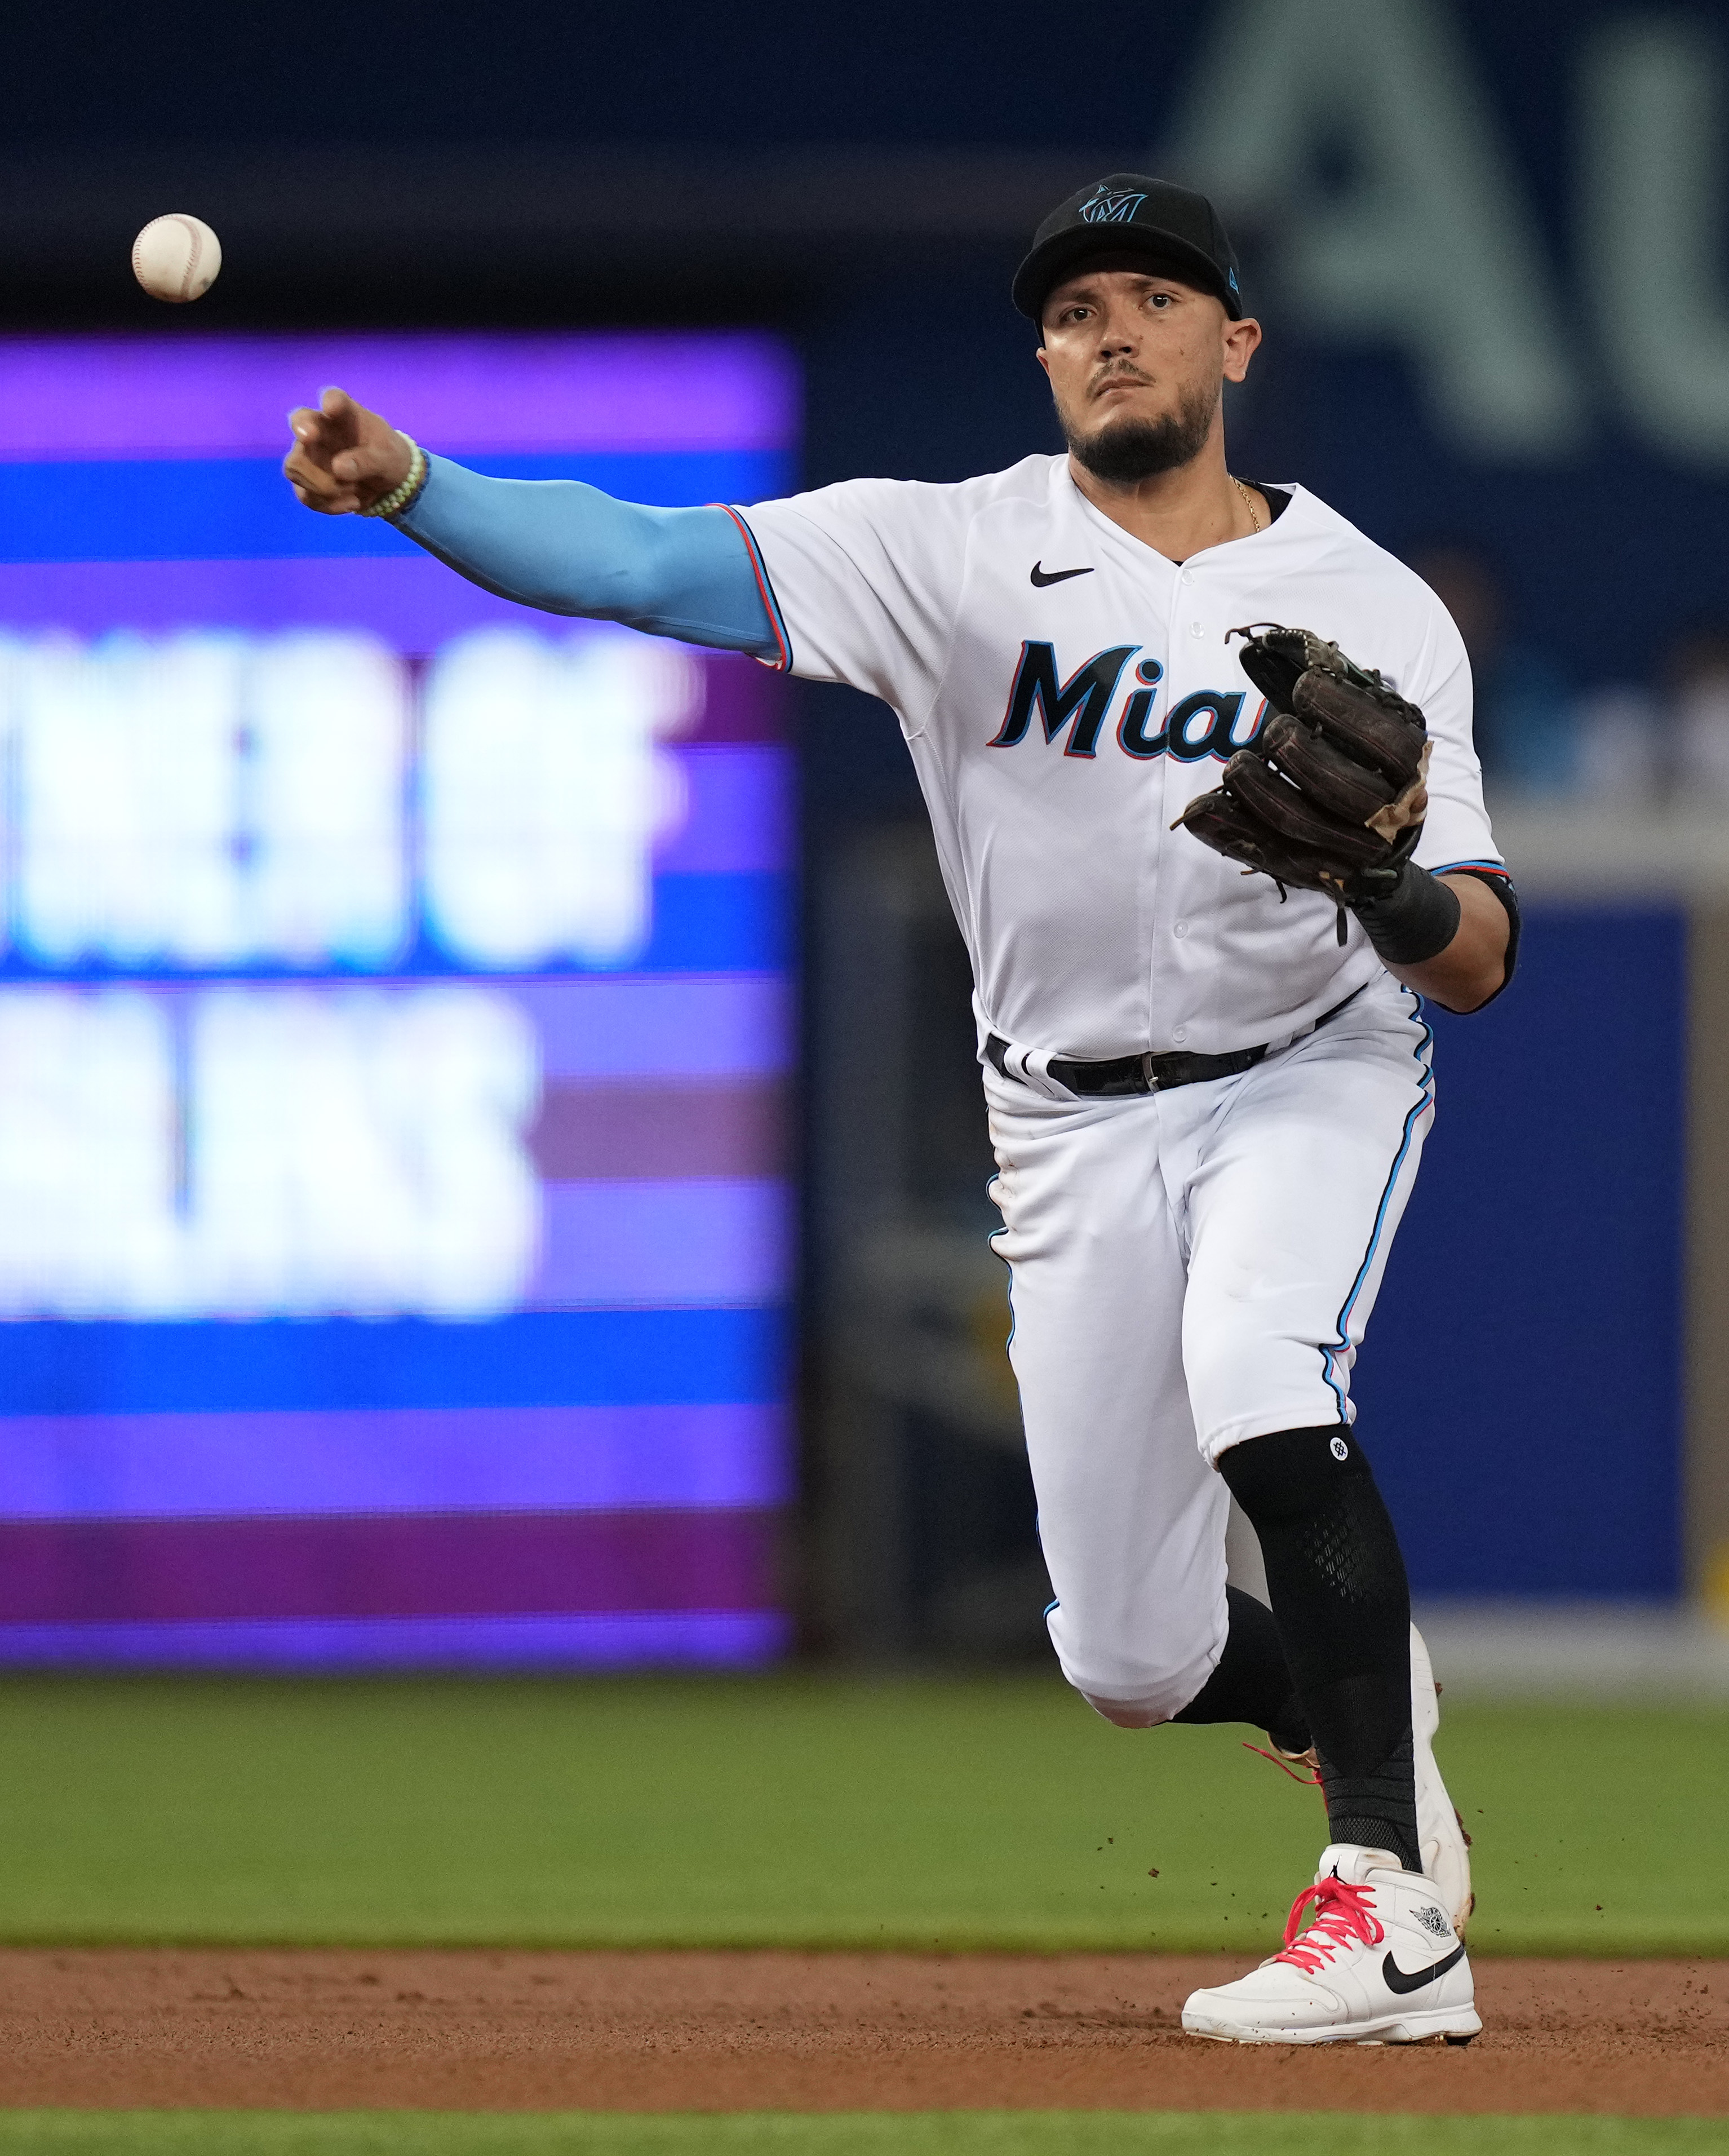 Miami Marlins shortstop Miguel Rojas (19) throws out New York Mets second baseman Javier Baez (not pictured) in the 1st inning at loanDepot park